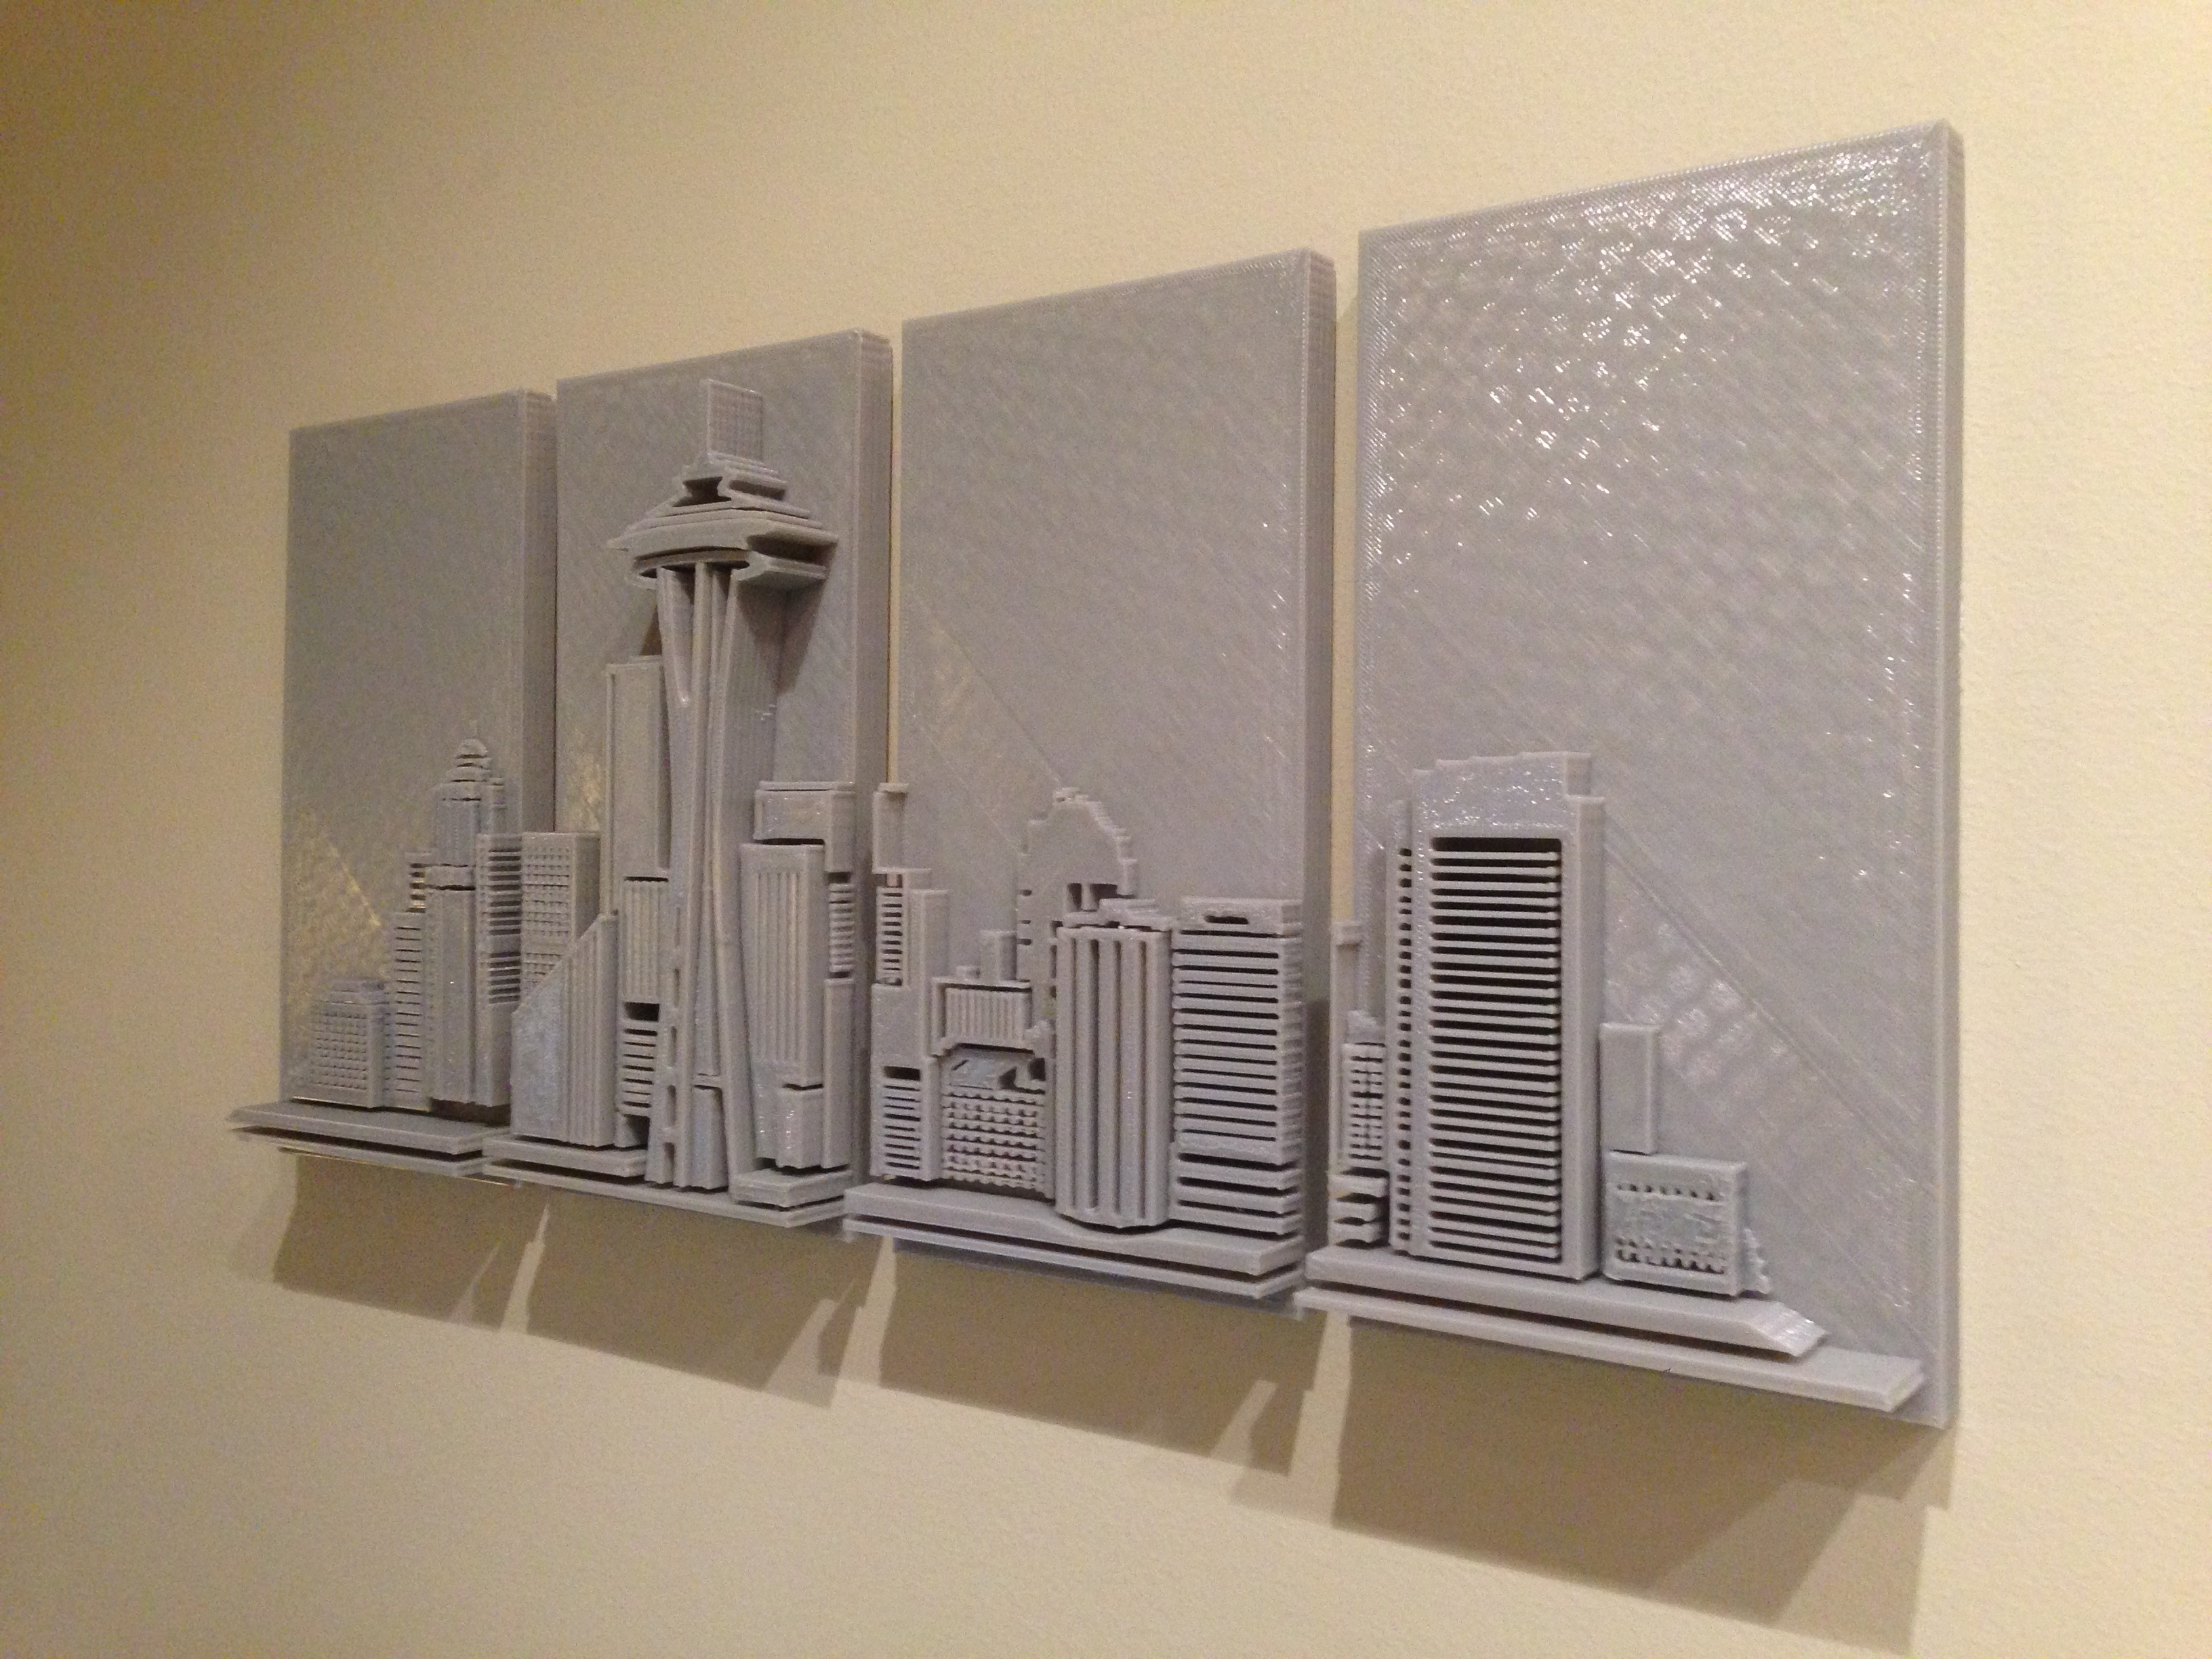 3D Printed Wall Art With Regard To Current 3D Printed Seattle Skyline – Wall Art – Imgur (Gallery 1 of 15)